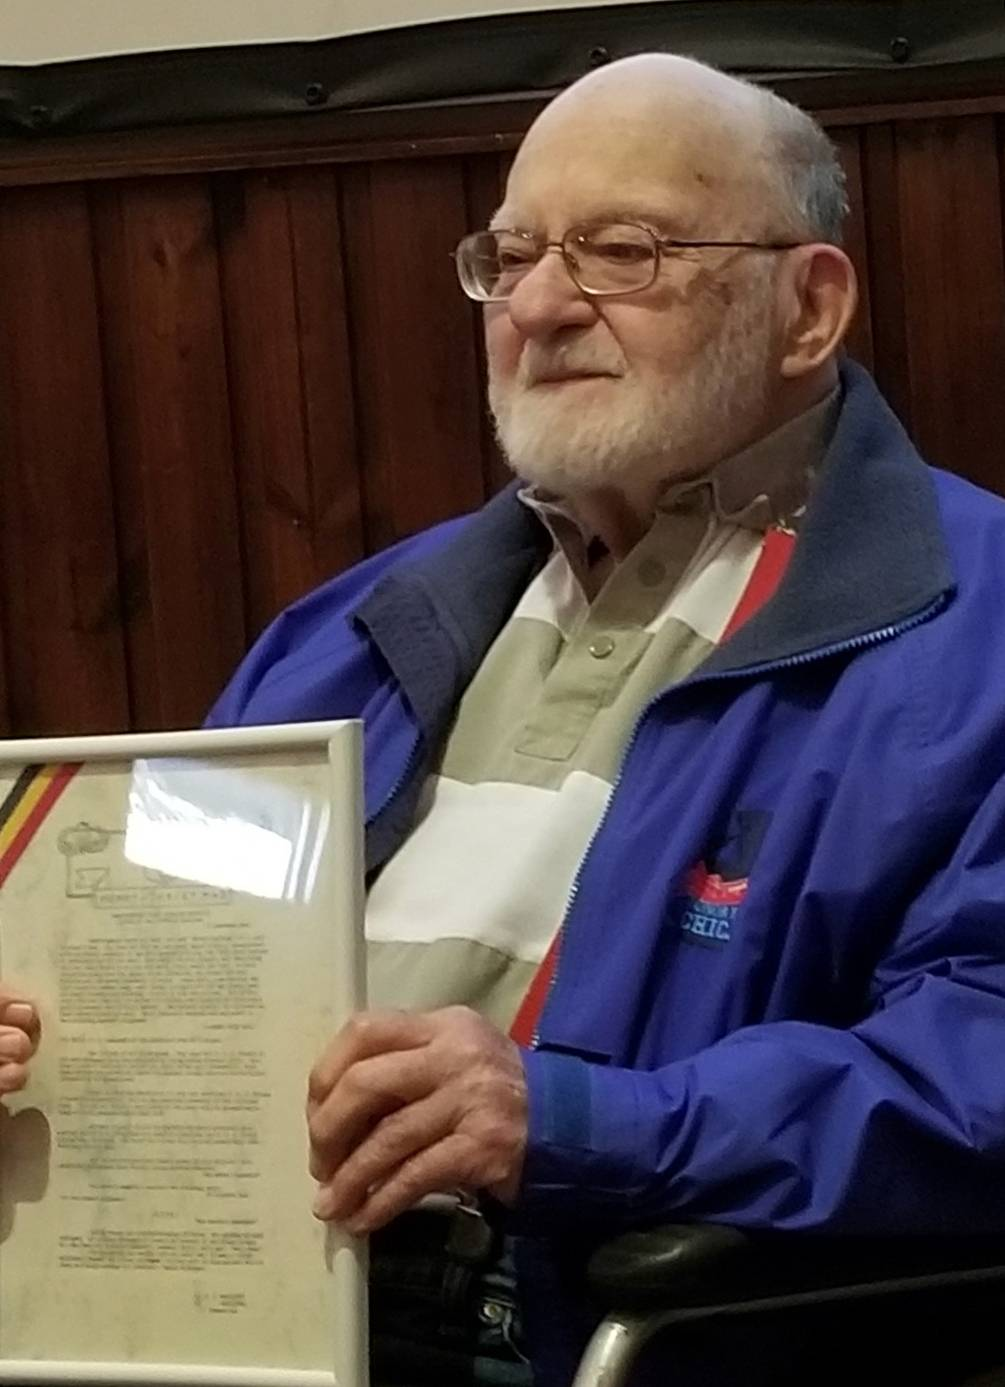 In September, Schaumburg resident Bernie Bluestein was honored for his service during World War II by the Belgian Army. Bluestein, 95, served in the Ghost Army during the war.